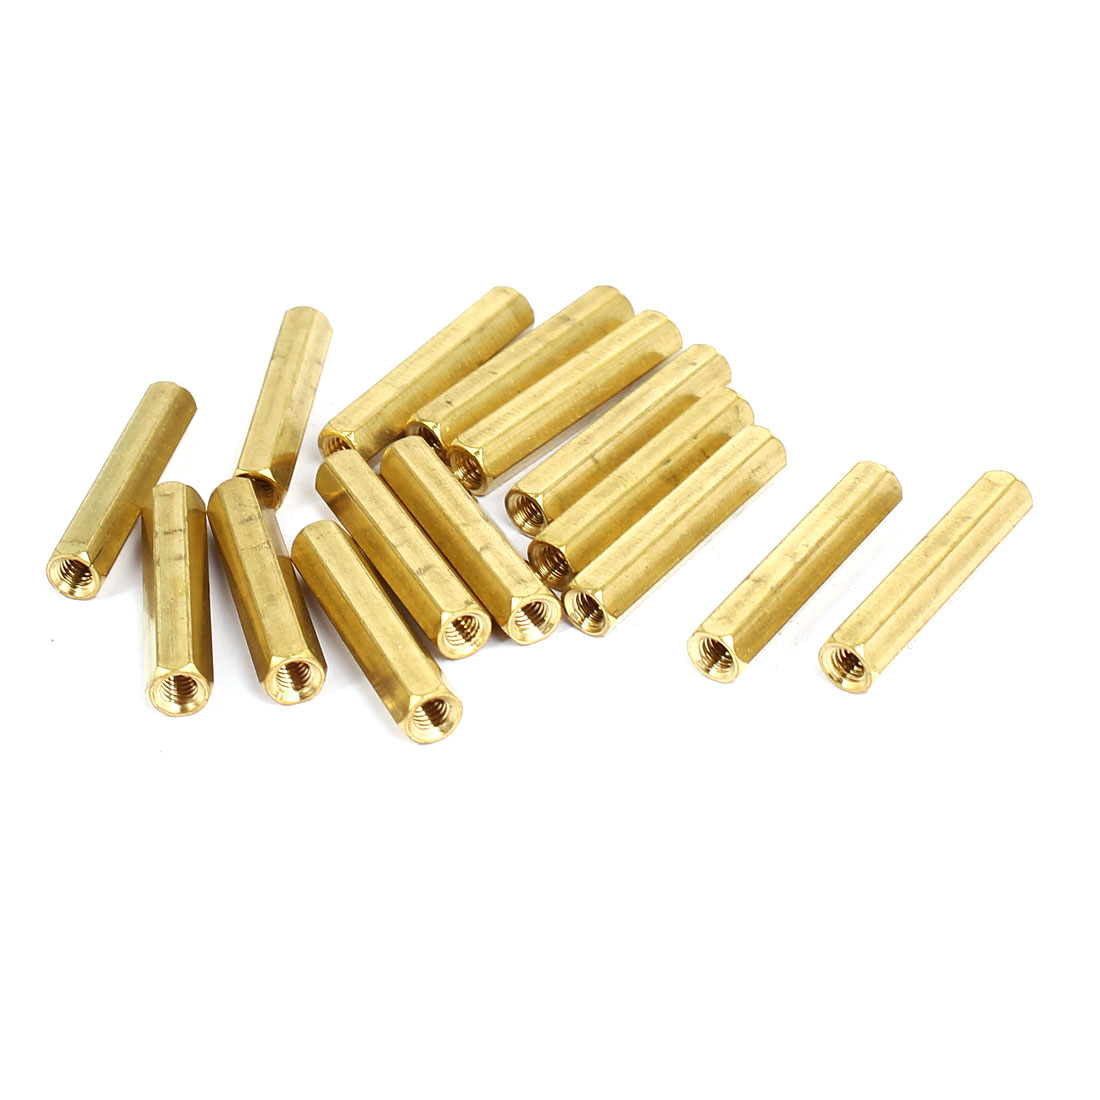 M4x30mm Brass Hex Hexagonal Female Thread PCB Standoff Spacer 15pcs